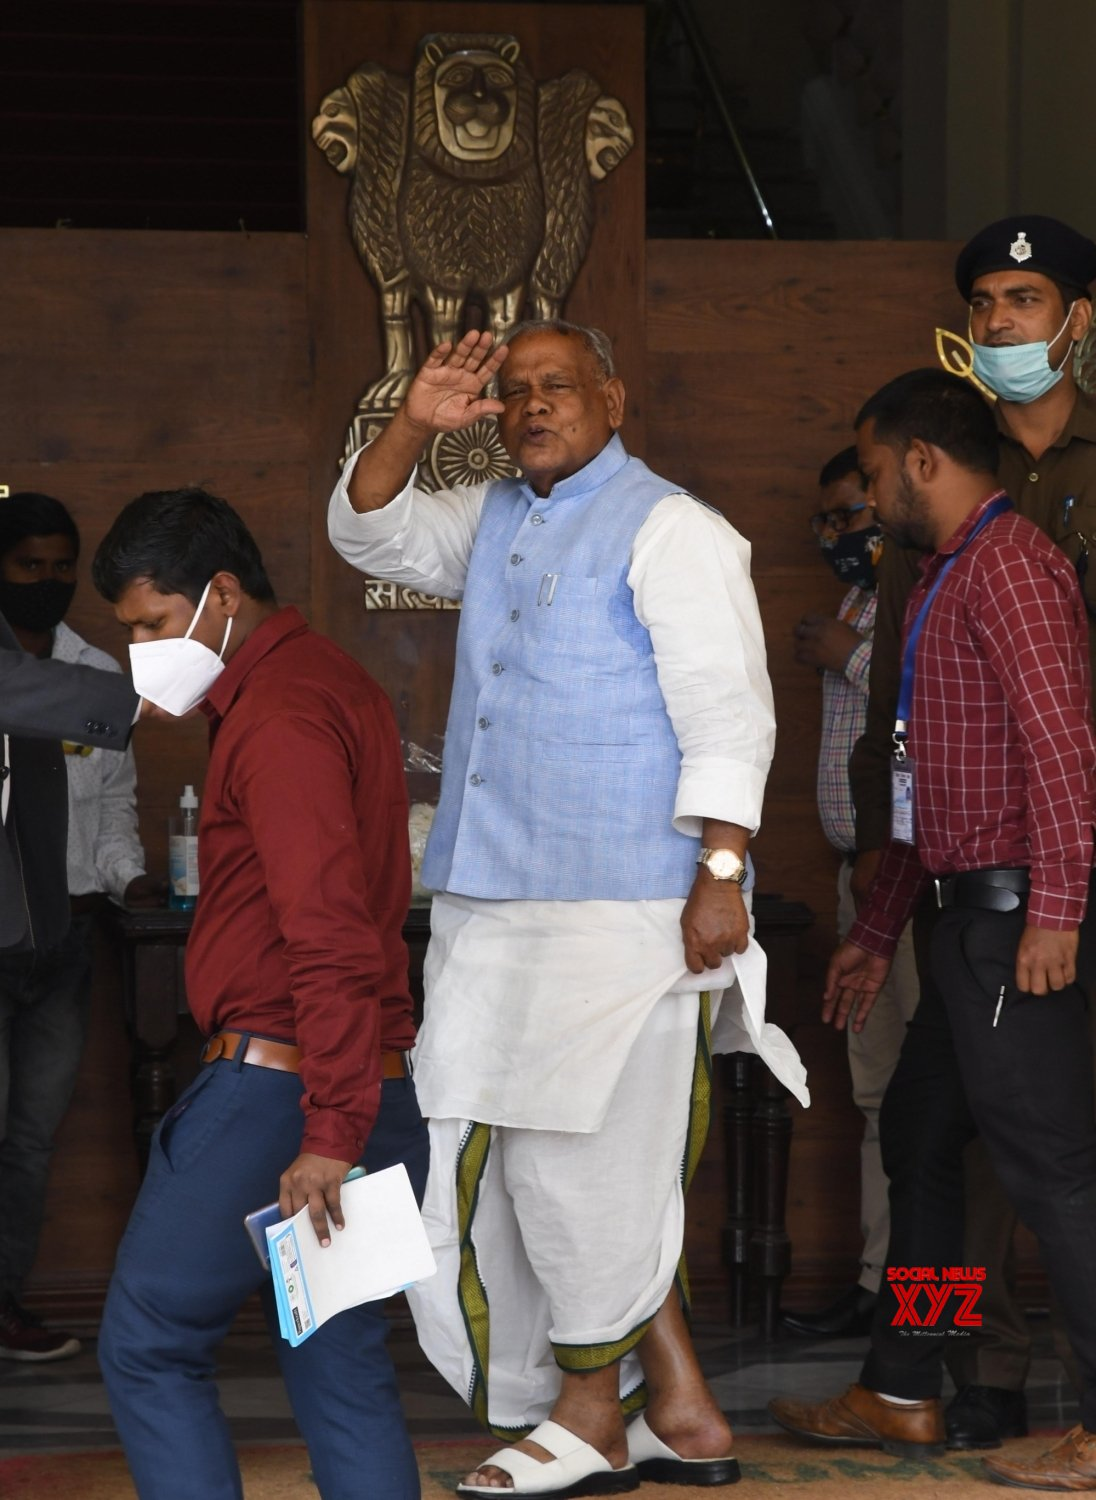 Bihar: HAM - S president Jitan Ram Manjhi arrives during the ongoing Budget Session of Bihar Assembly in Patna on Tuesday 23rd February, 2021 #Gallery